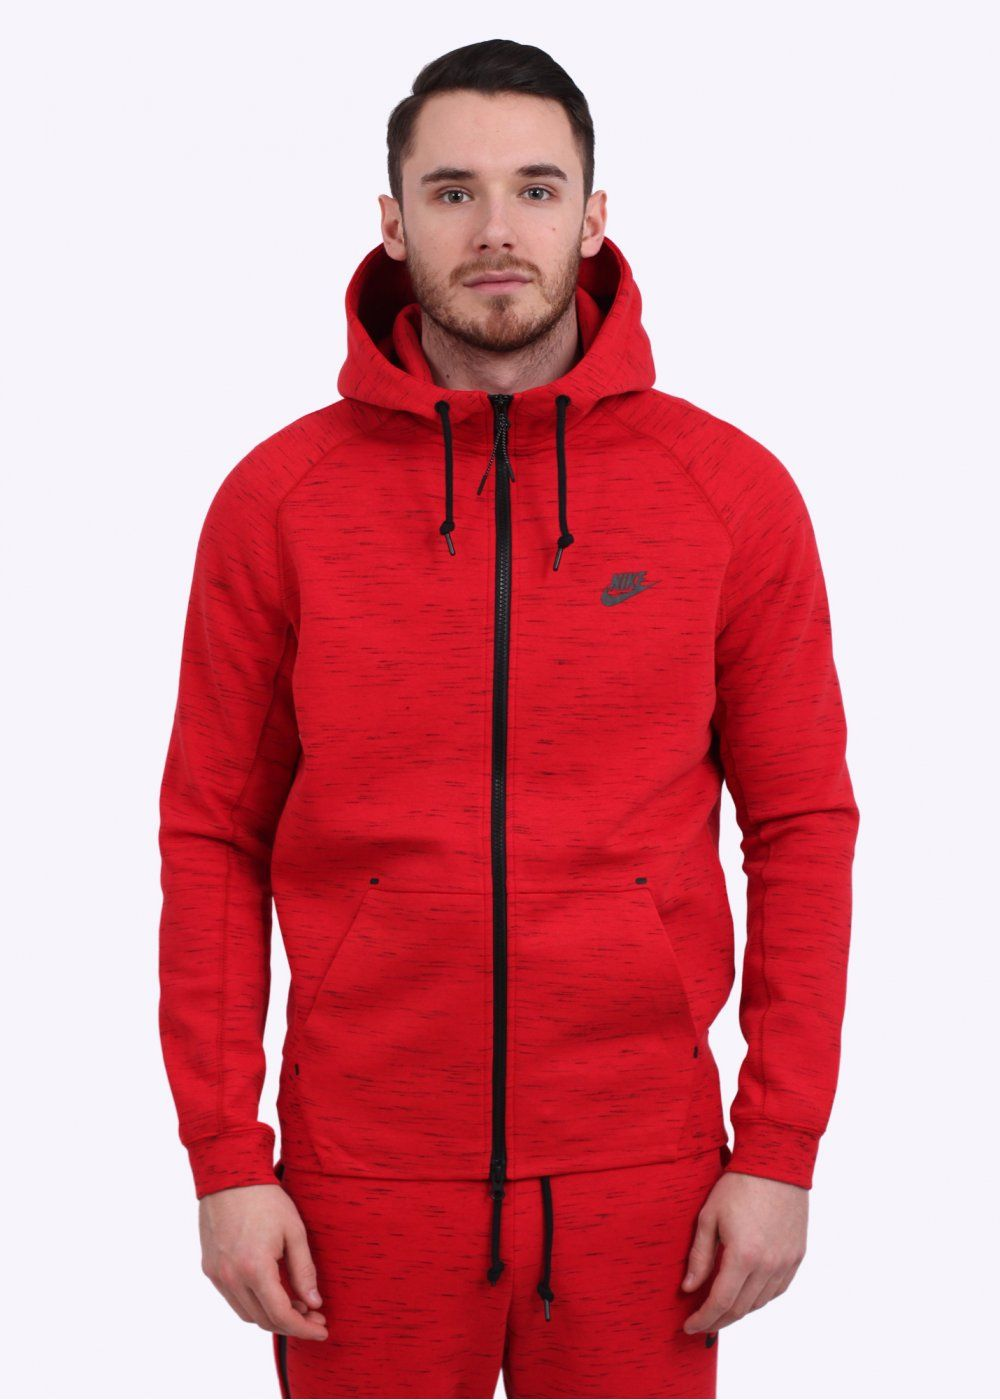 Nike Aw77 Tech Fleece Hoodie Red Clothes In 2019